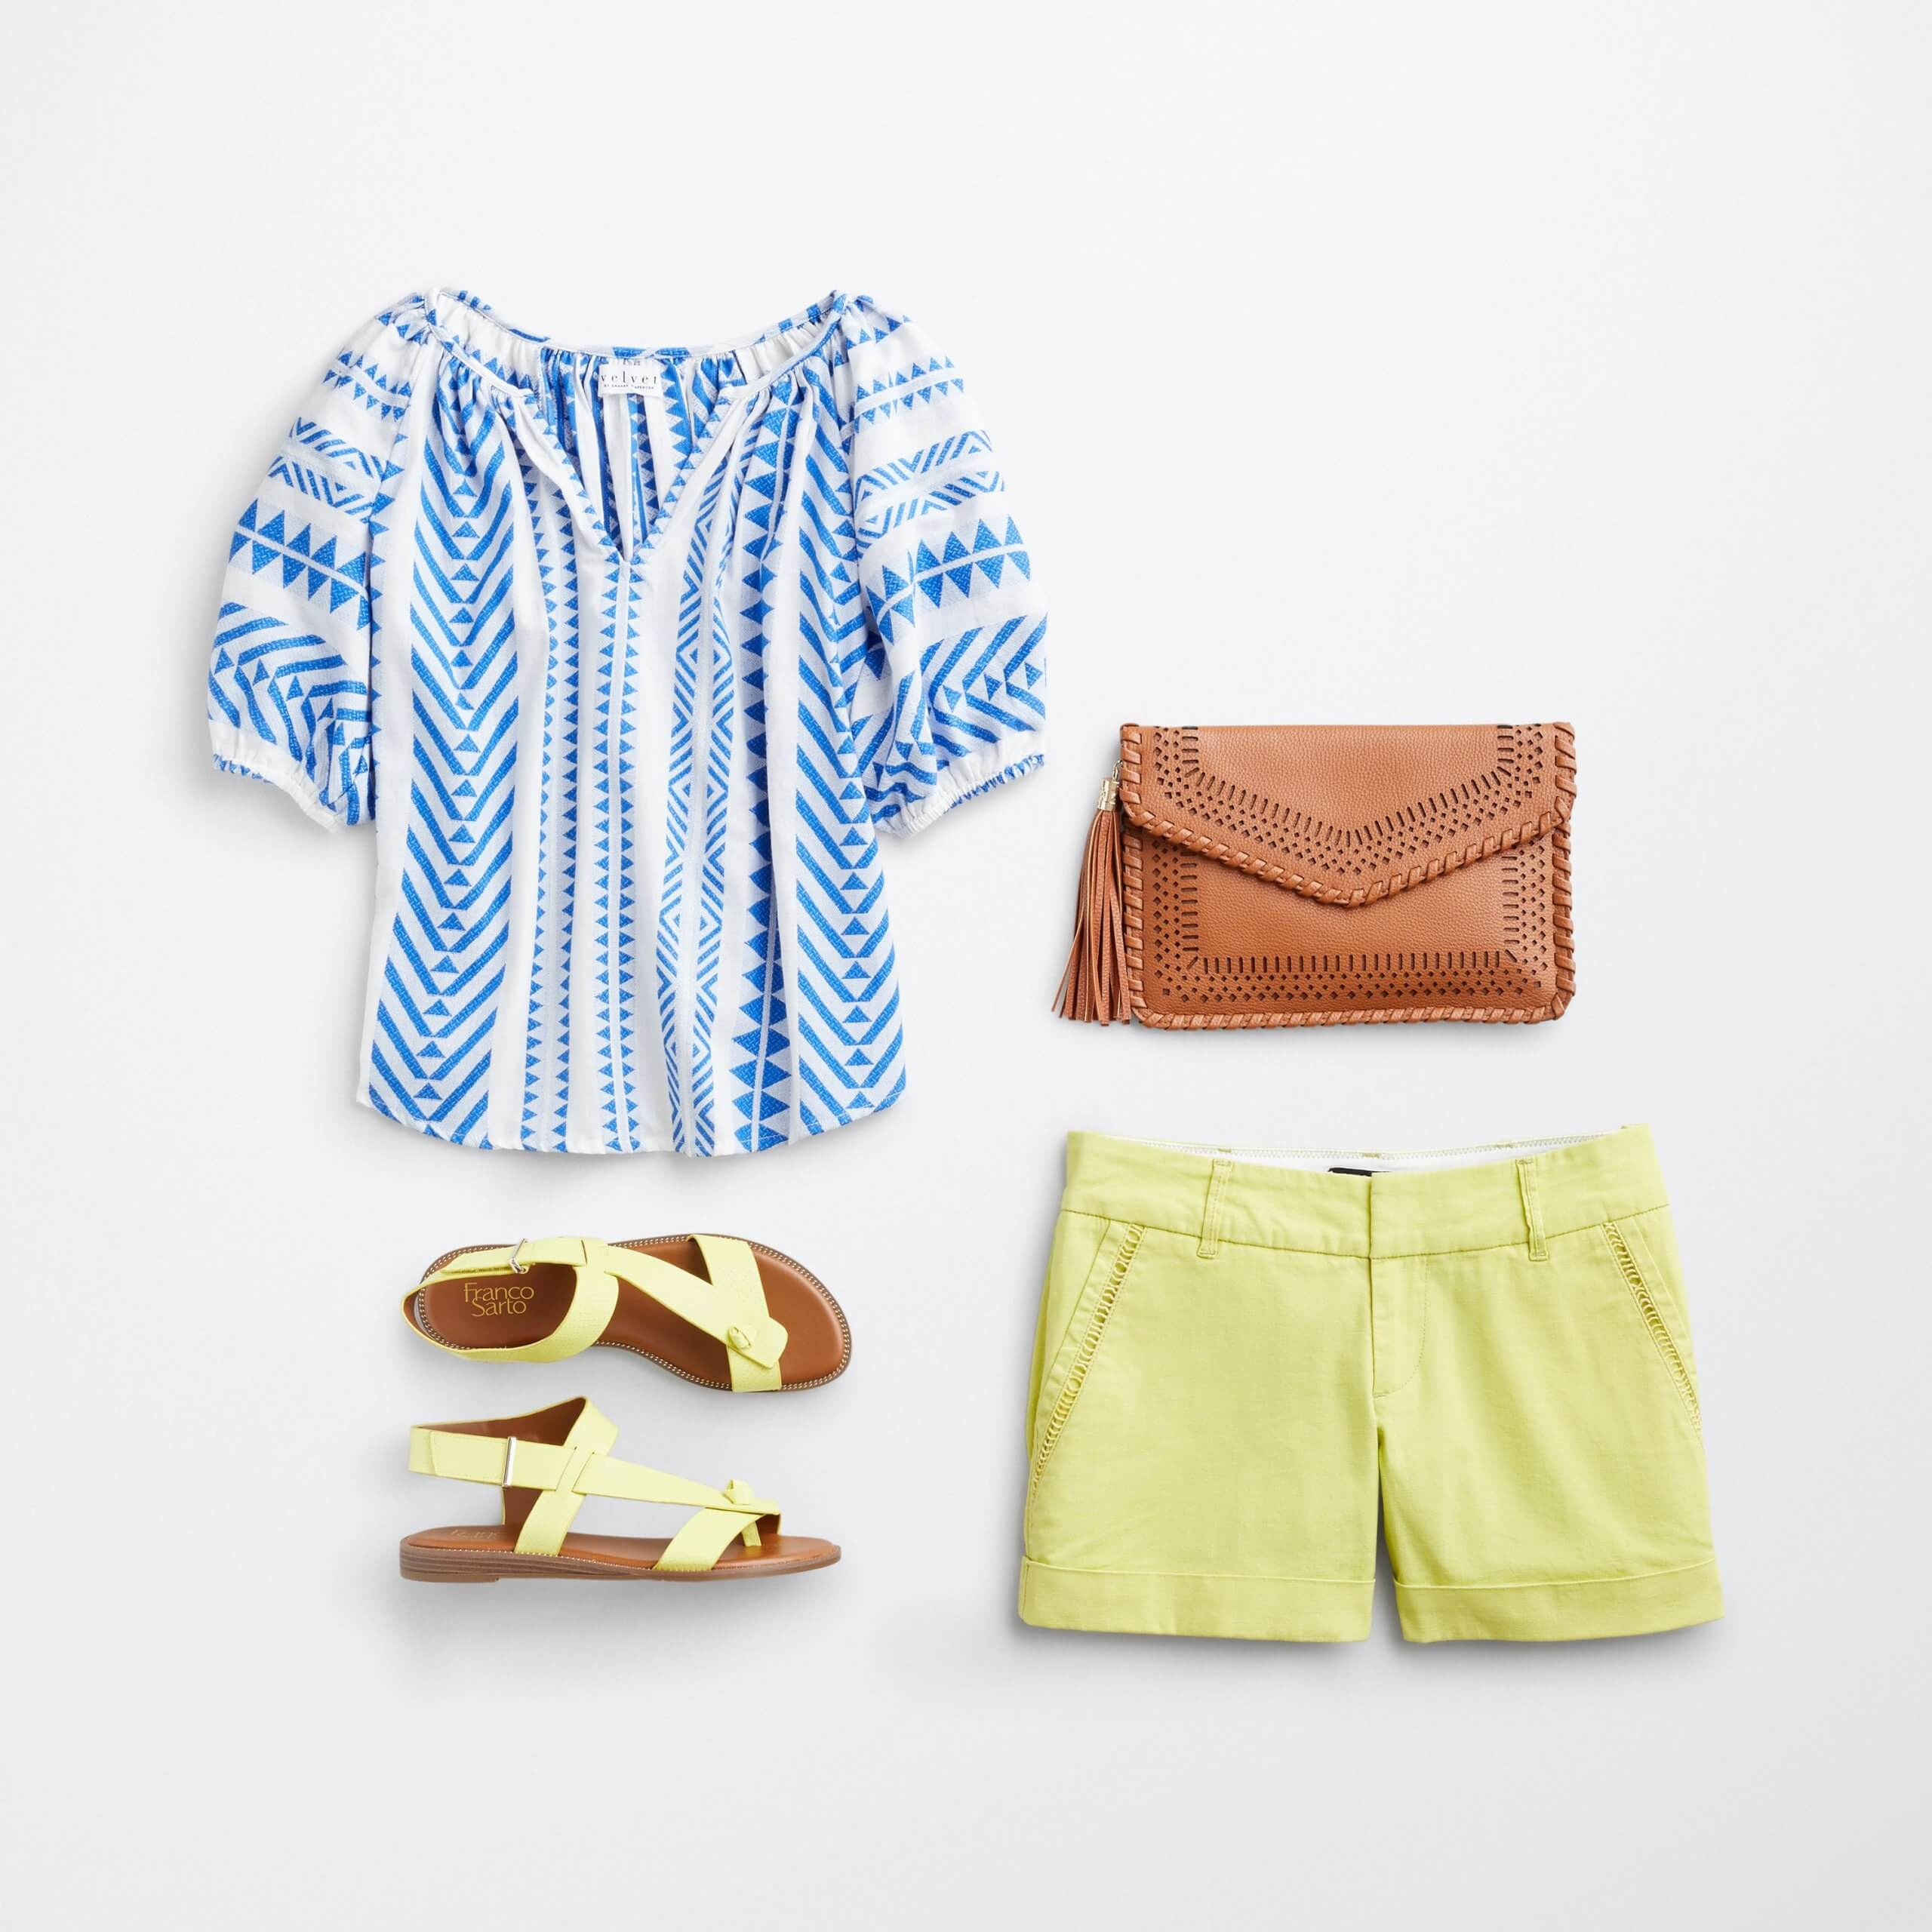 Stitch Fix Women's outfit laydown featuring blue and white printed shirt, brown clutch, yellow strappy sandals and yellow shorts.